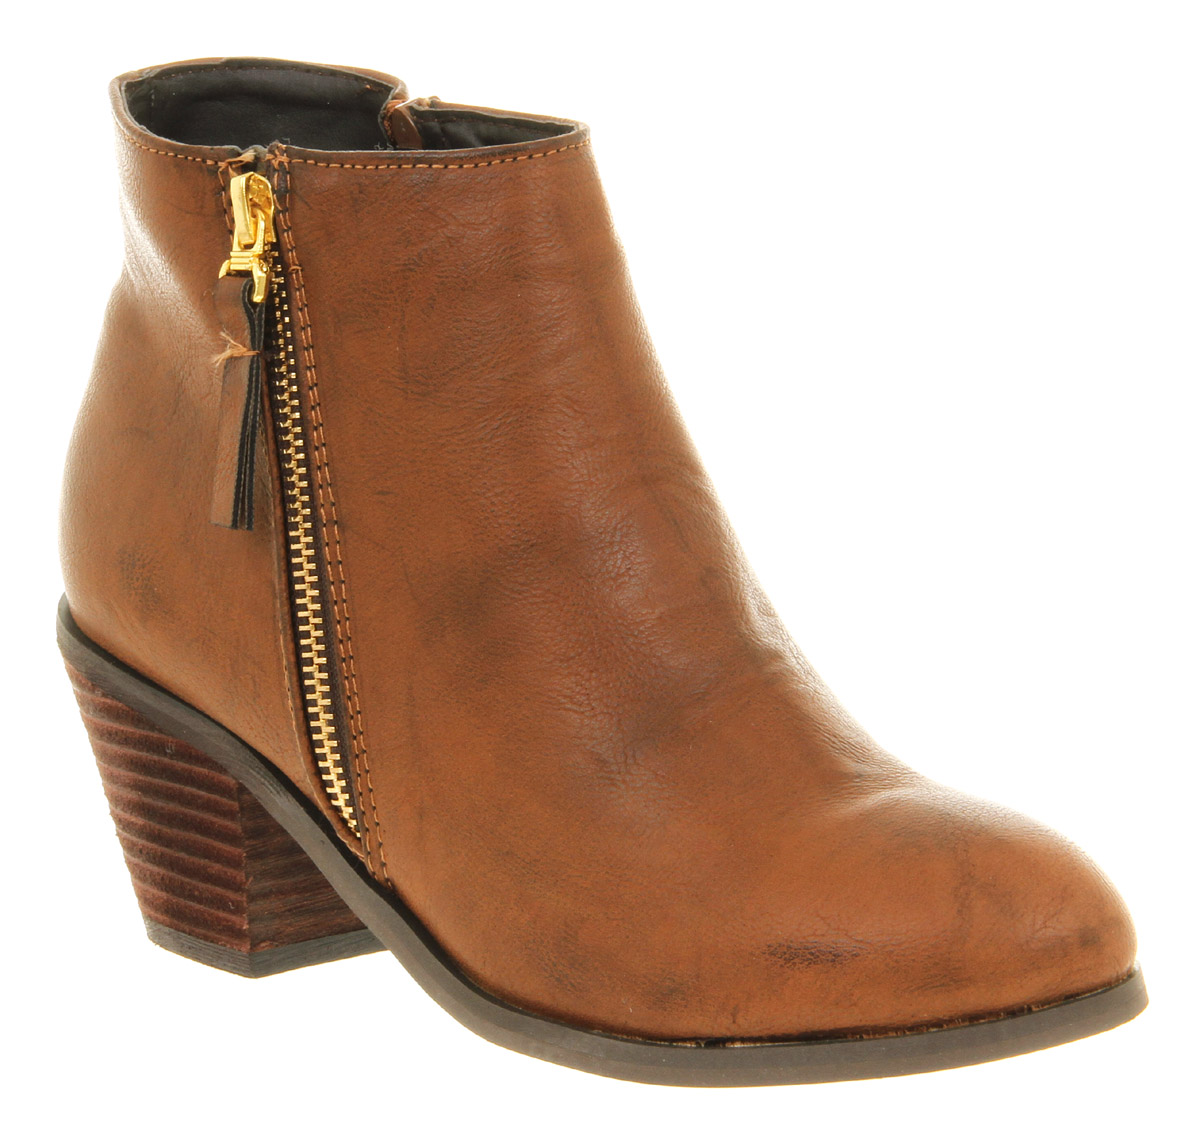 Brown Ankle Boots For Women DQw2Svrm